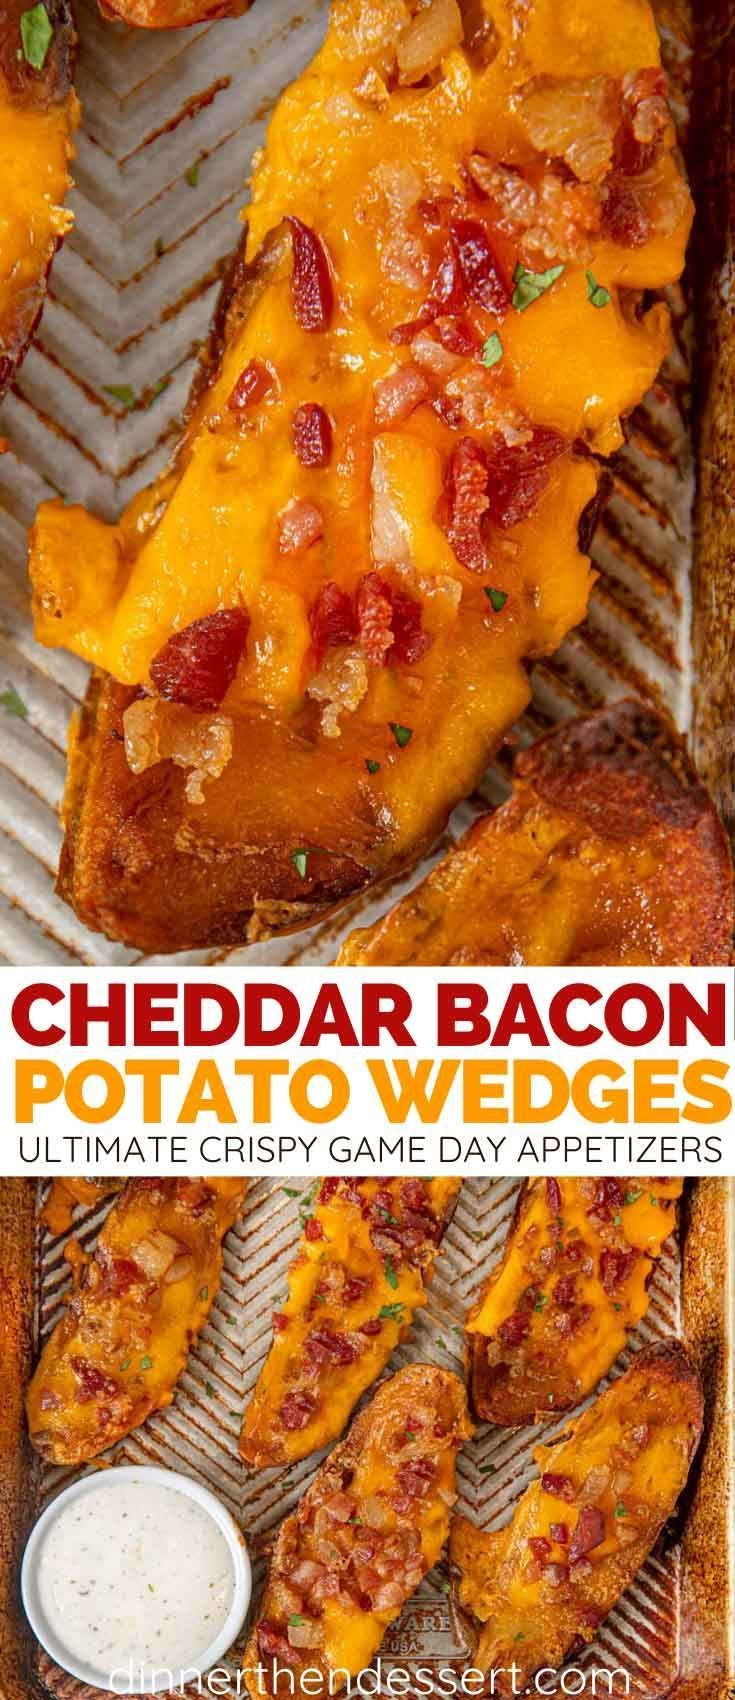 Cheddar Bacon Potato Wedges are fried with cheddar cheese and lots of bacon. It s the ultimate cris